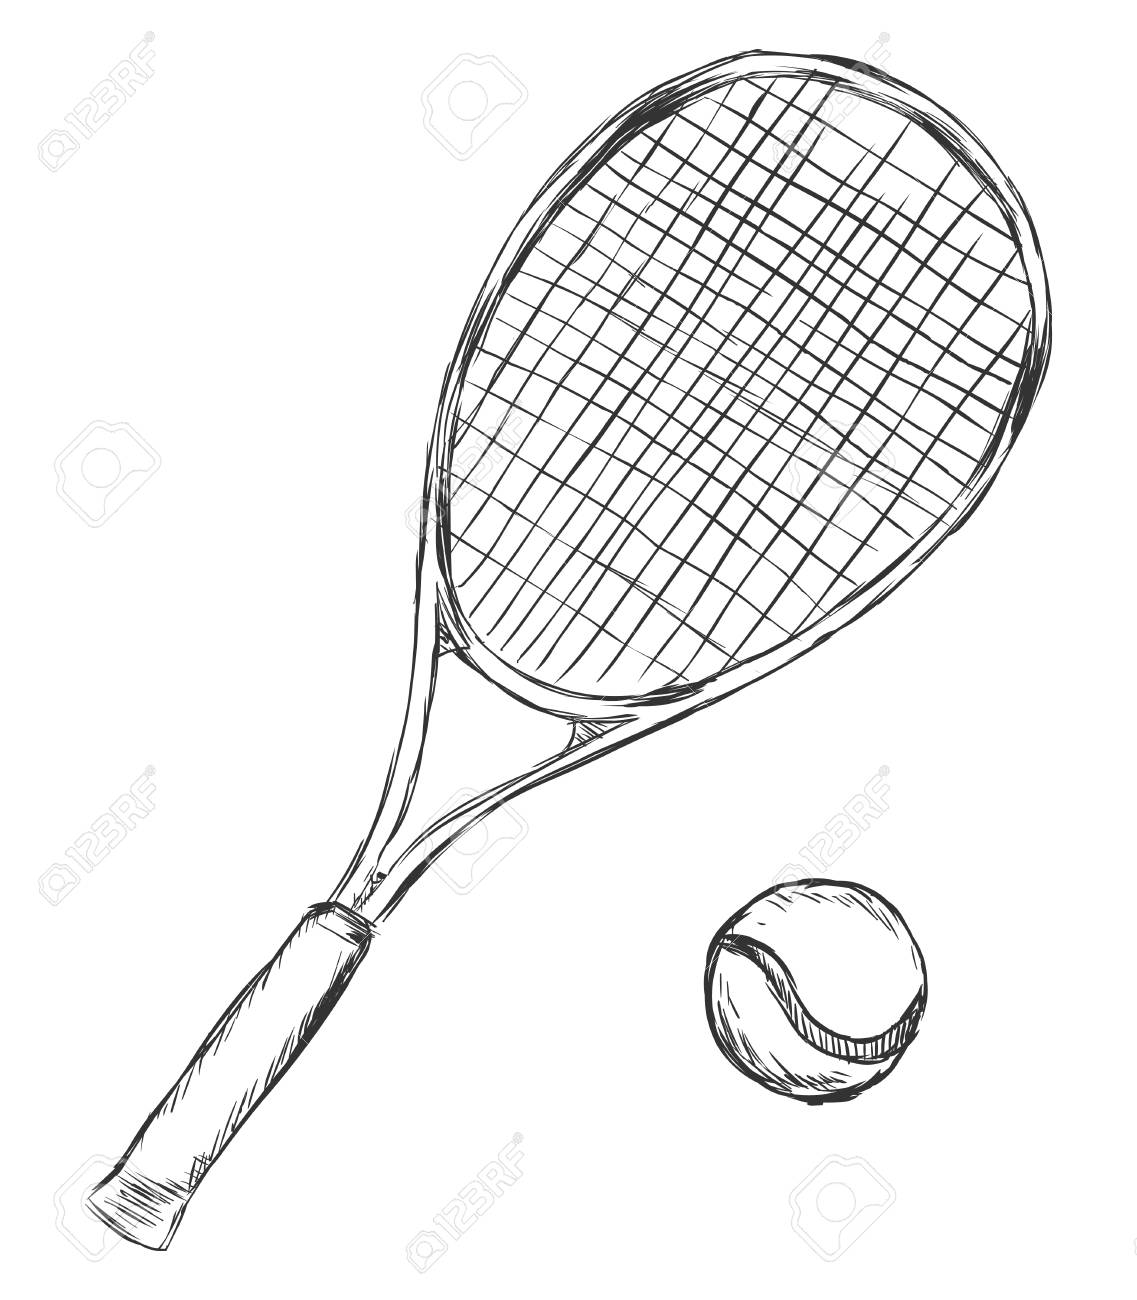 Vector Sketch Tennis Racket And Ball On White Background Royalty